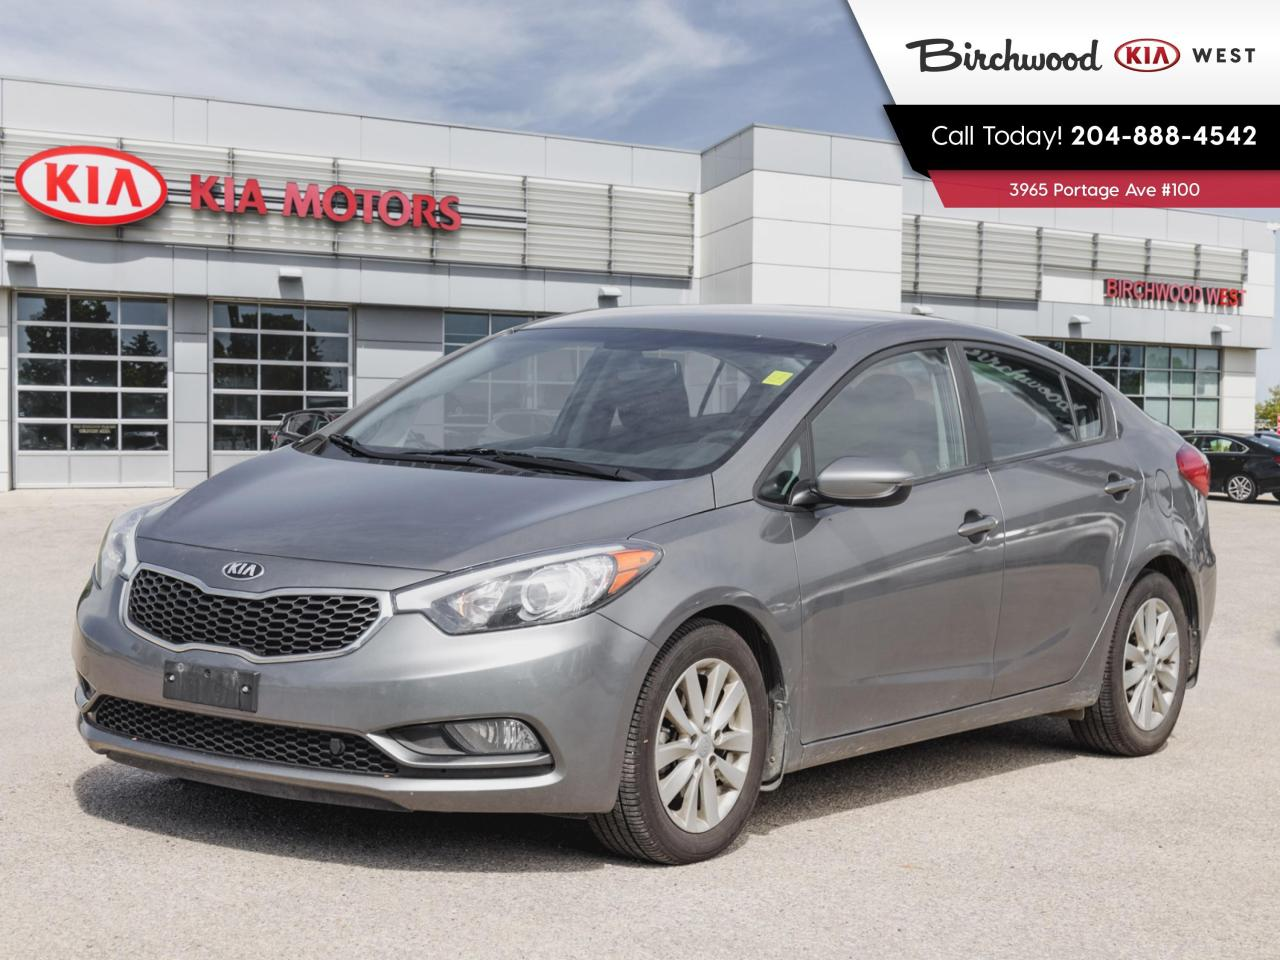 used 2016 kia forte lx accident free local trade for sale in winnipeg, manitoba carpages.ca